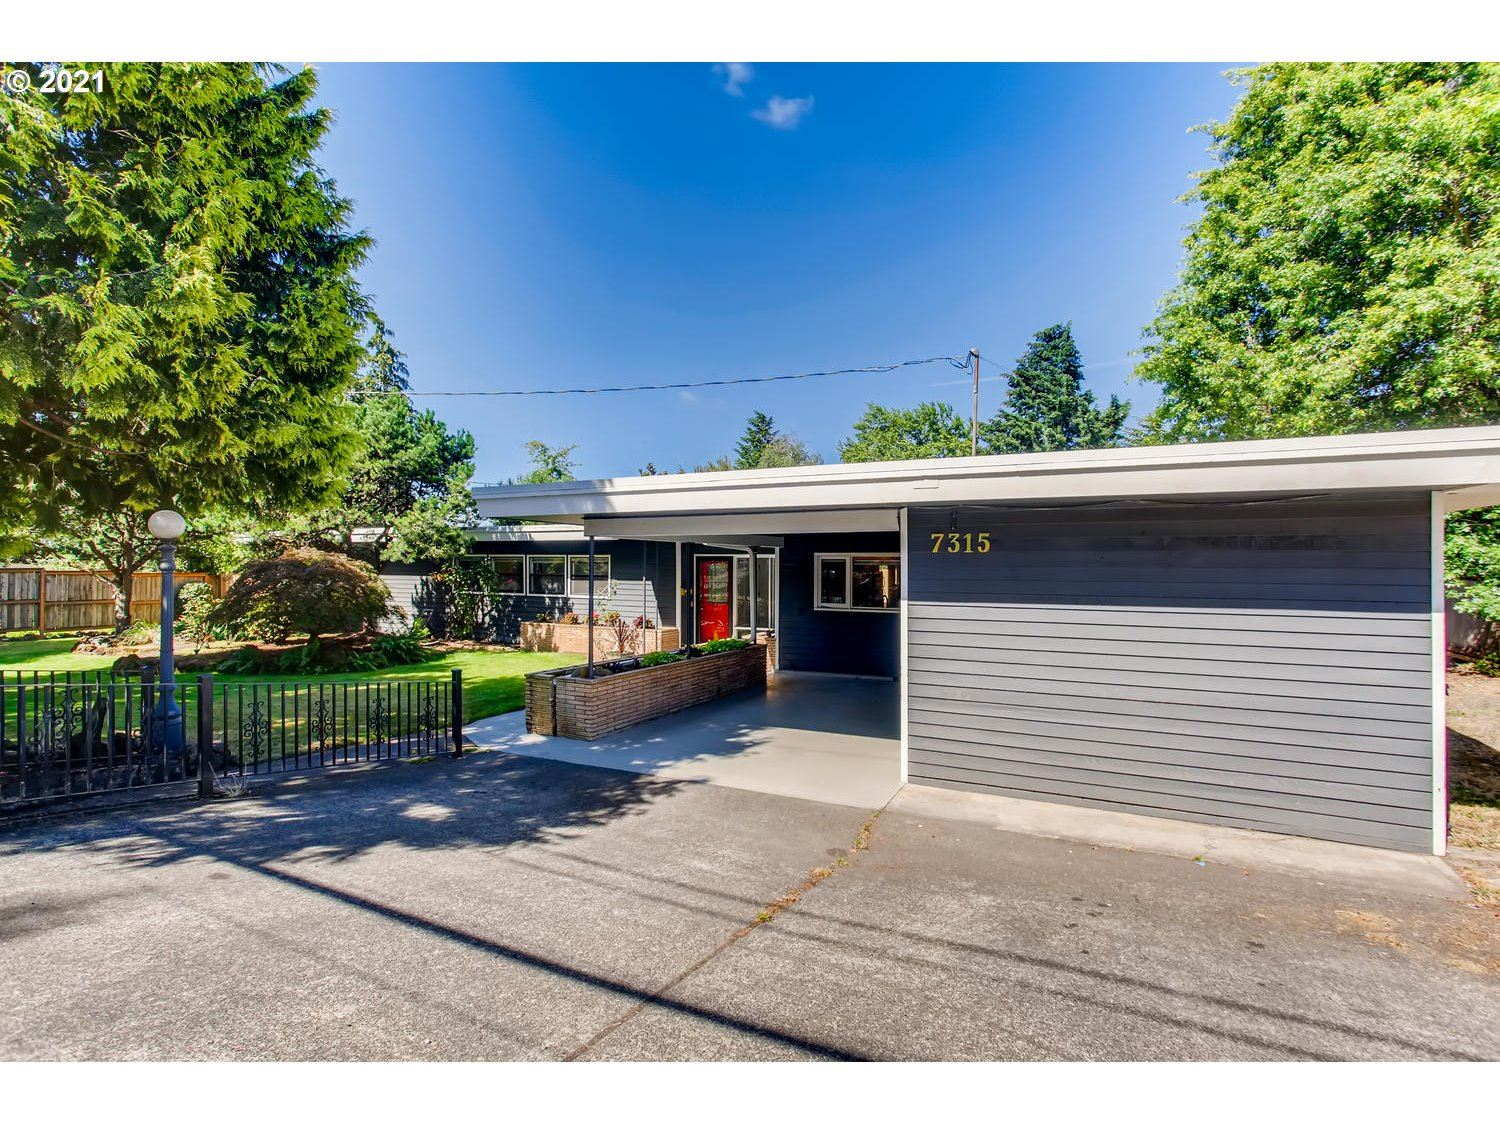 7315 SE 45TH AVE, Portland, OR 97206 - MLS#: 21440638